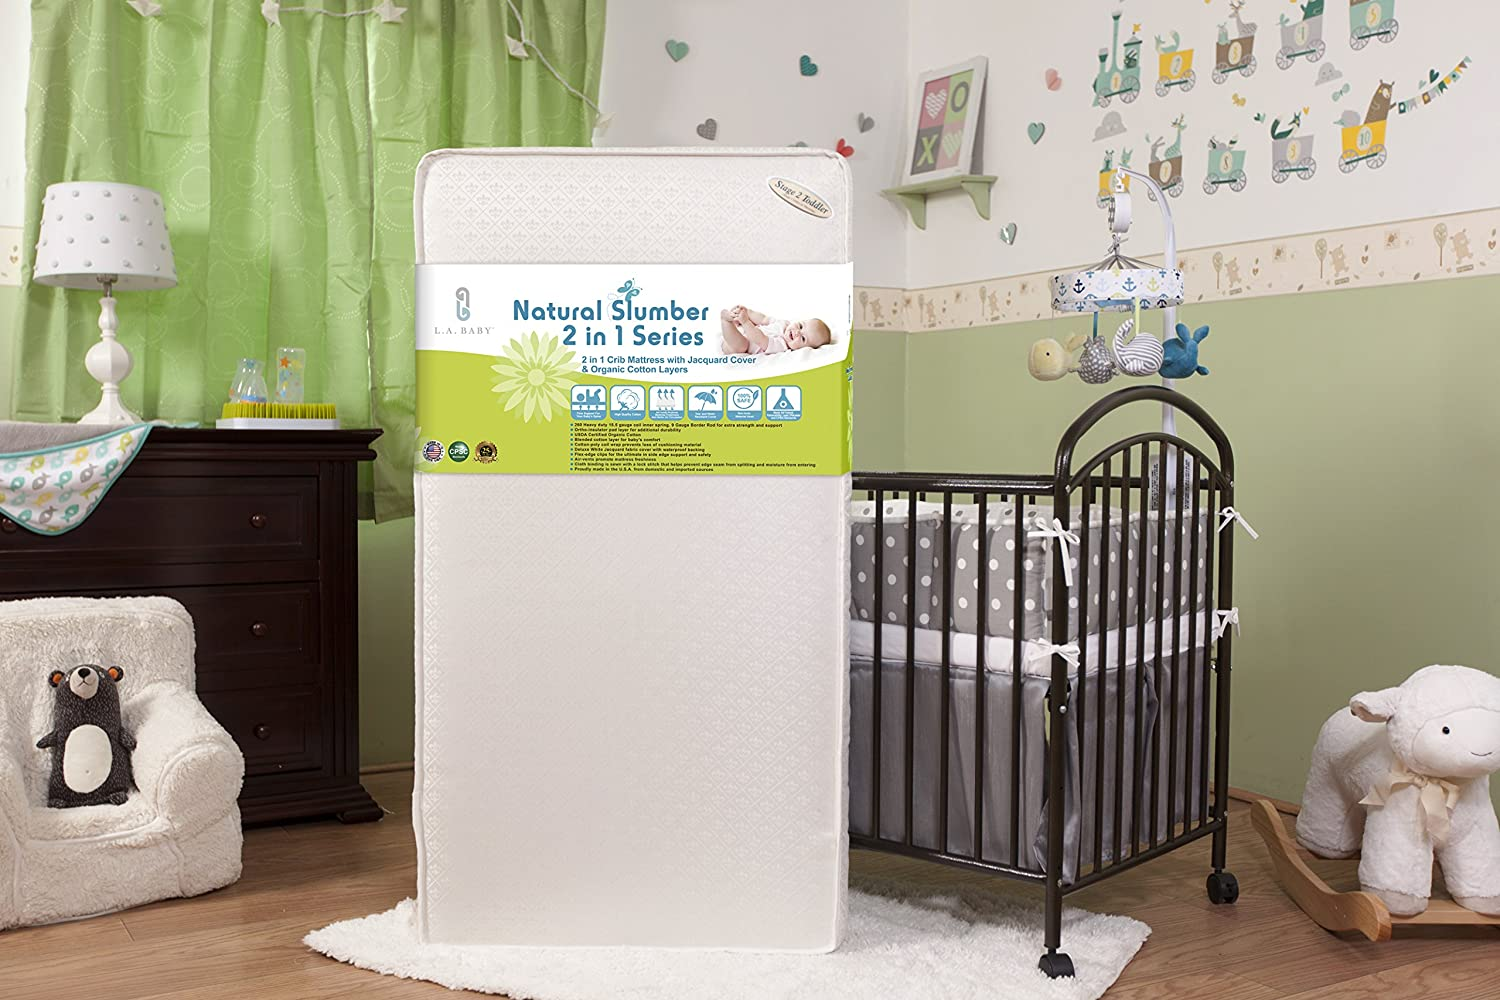 Amazon Com La Baby 2 In 1 Crib Mattress With Jacquard Cover